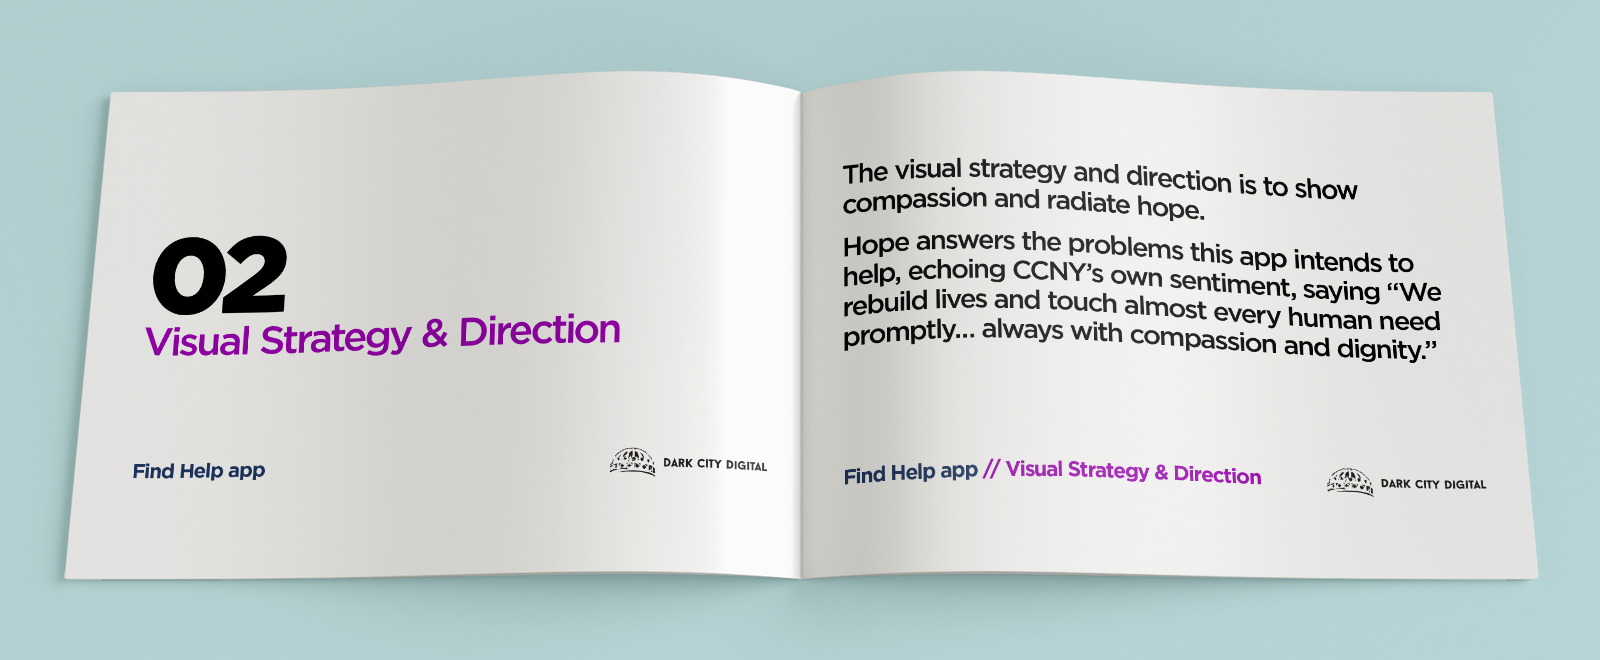 Catholic Charities Find Help Campaign Visual Strategy